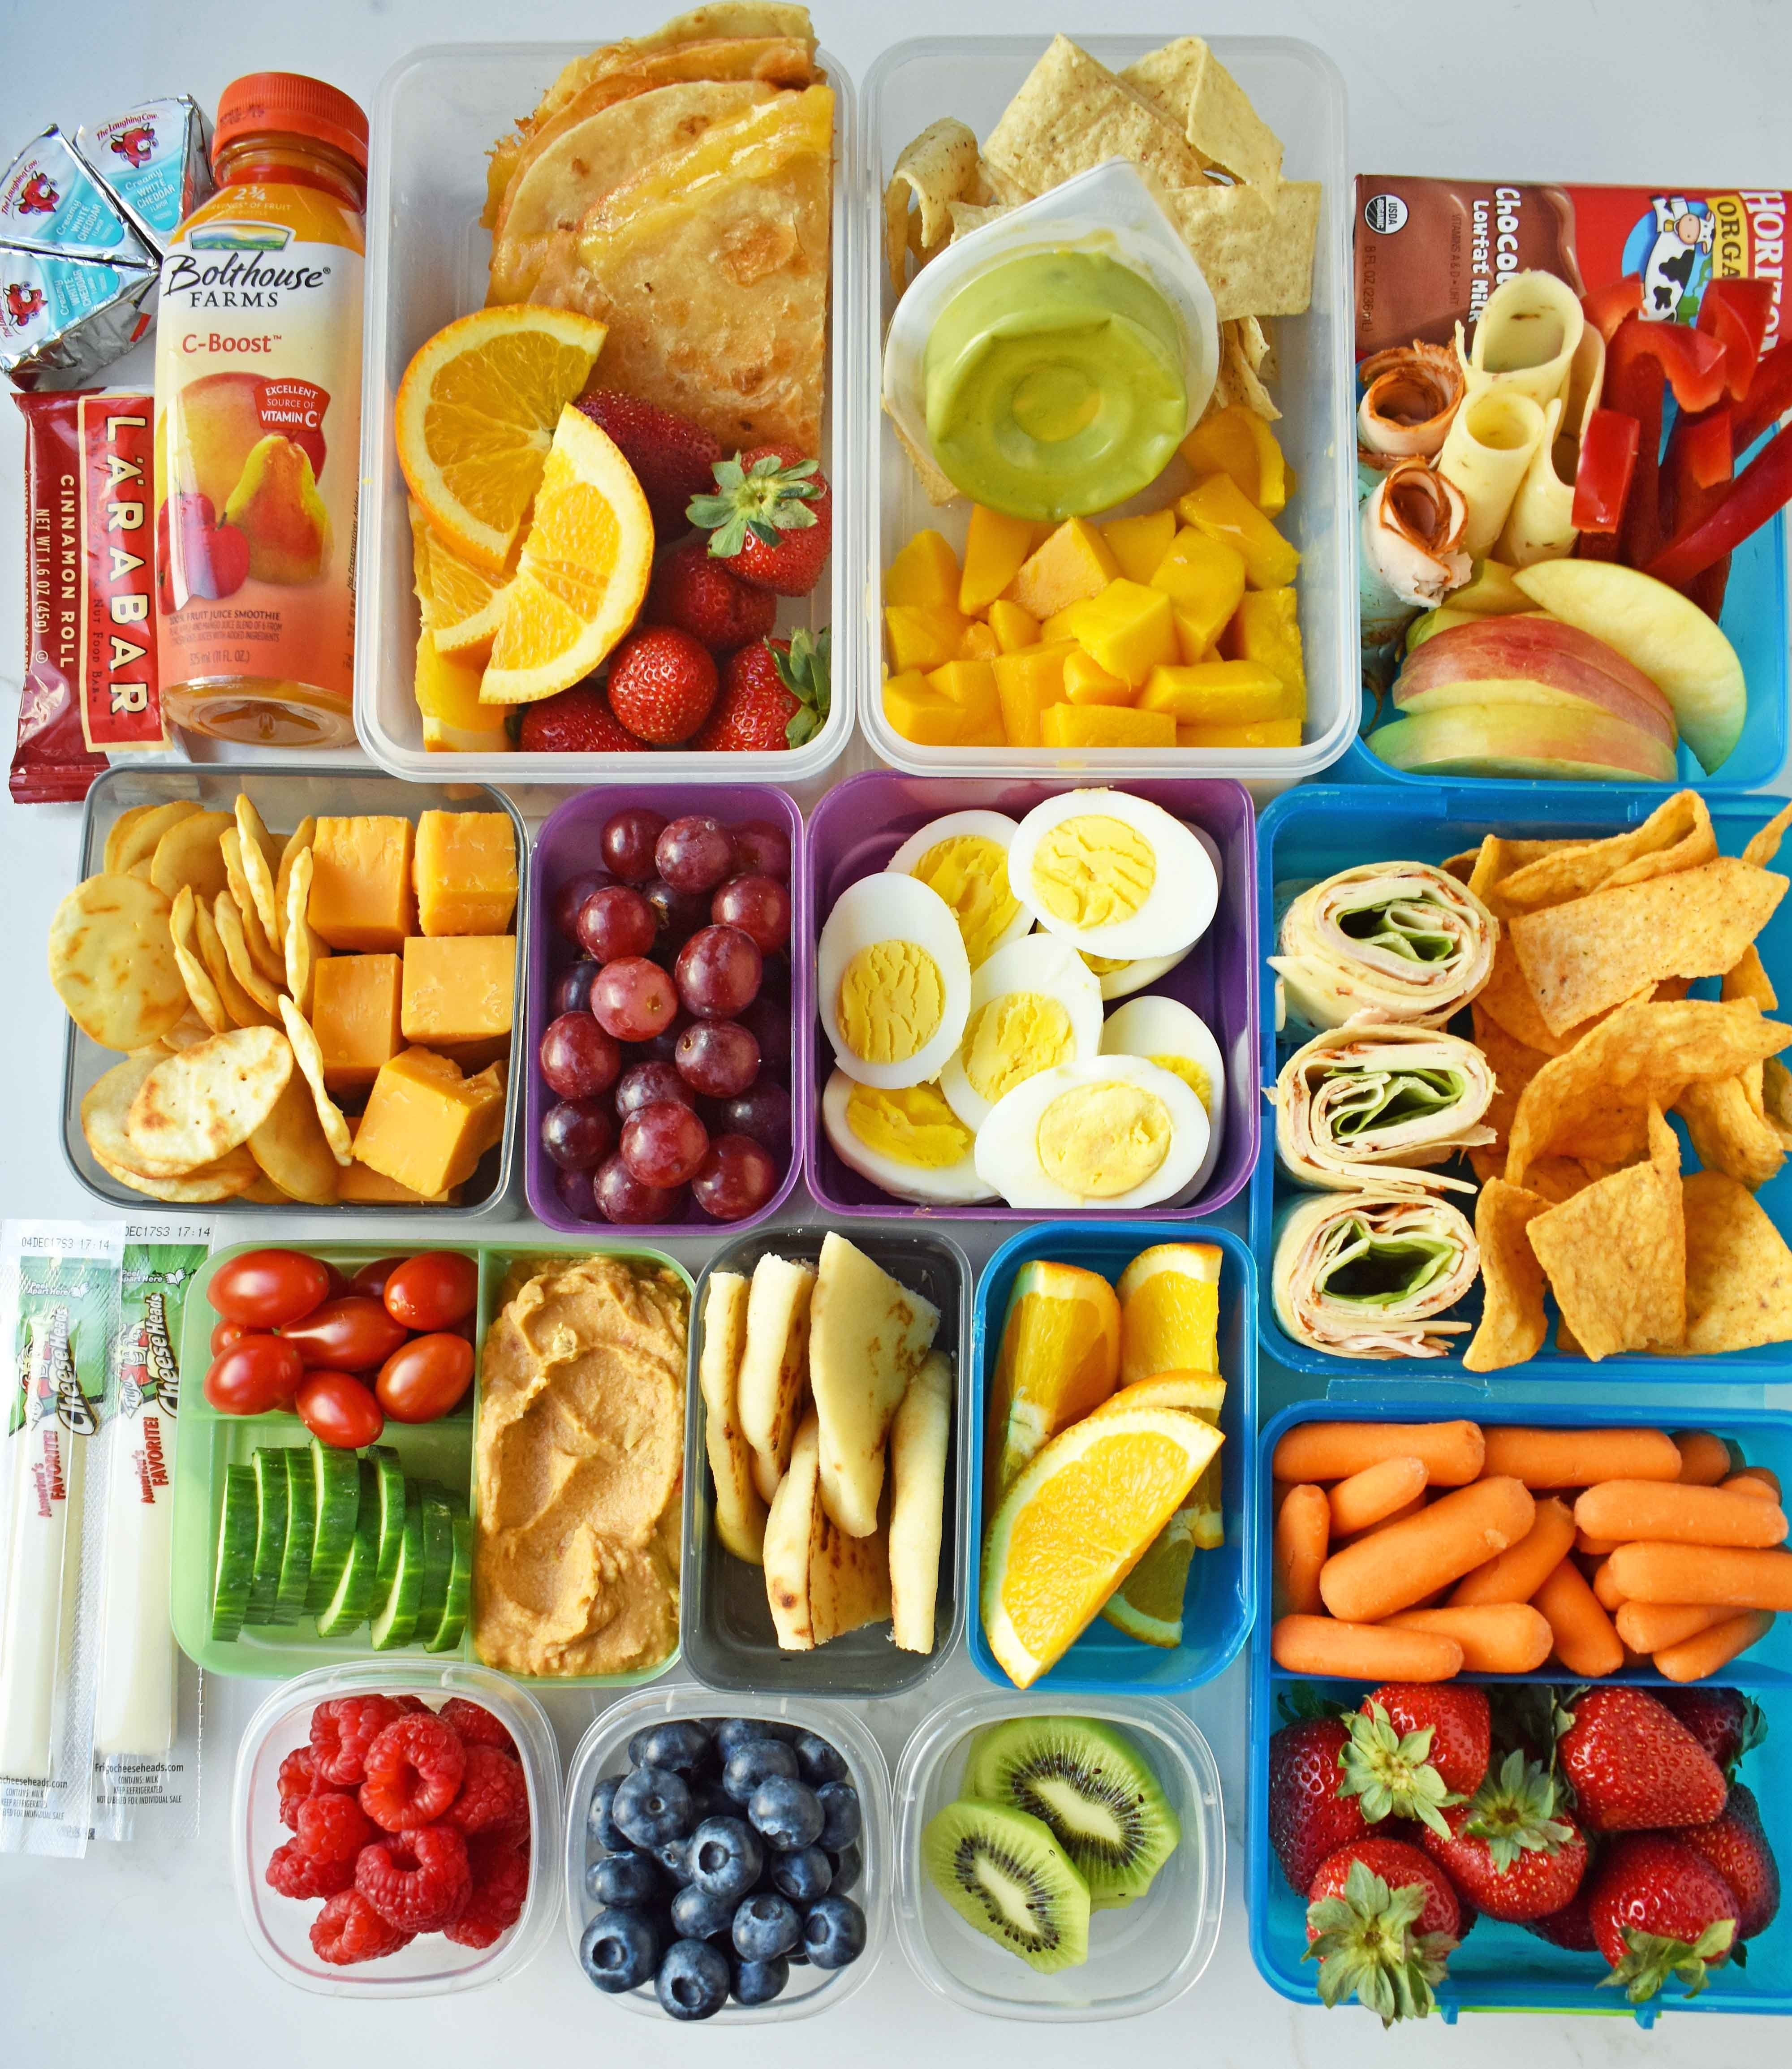 10 Most Recommended Healthy Breakfast Ideas For Toddlers back to school kids lunch ideas modern honey 31 2020